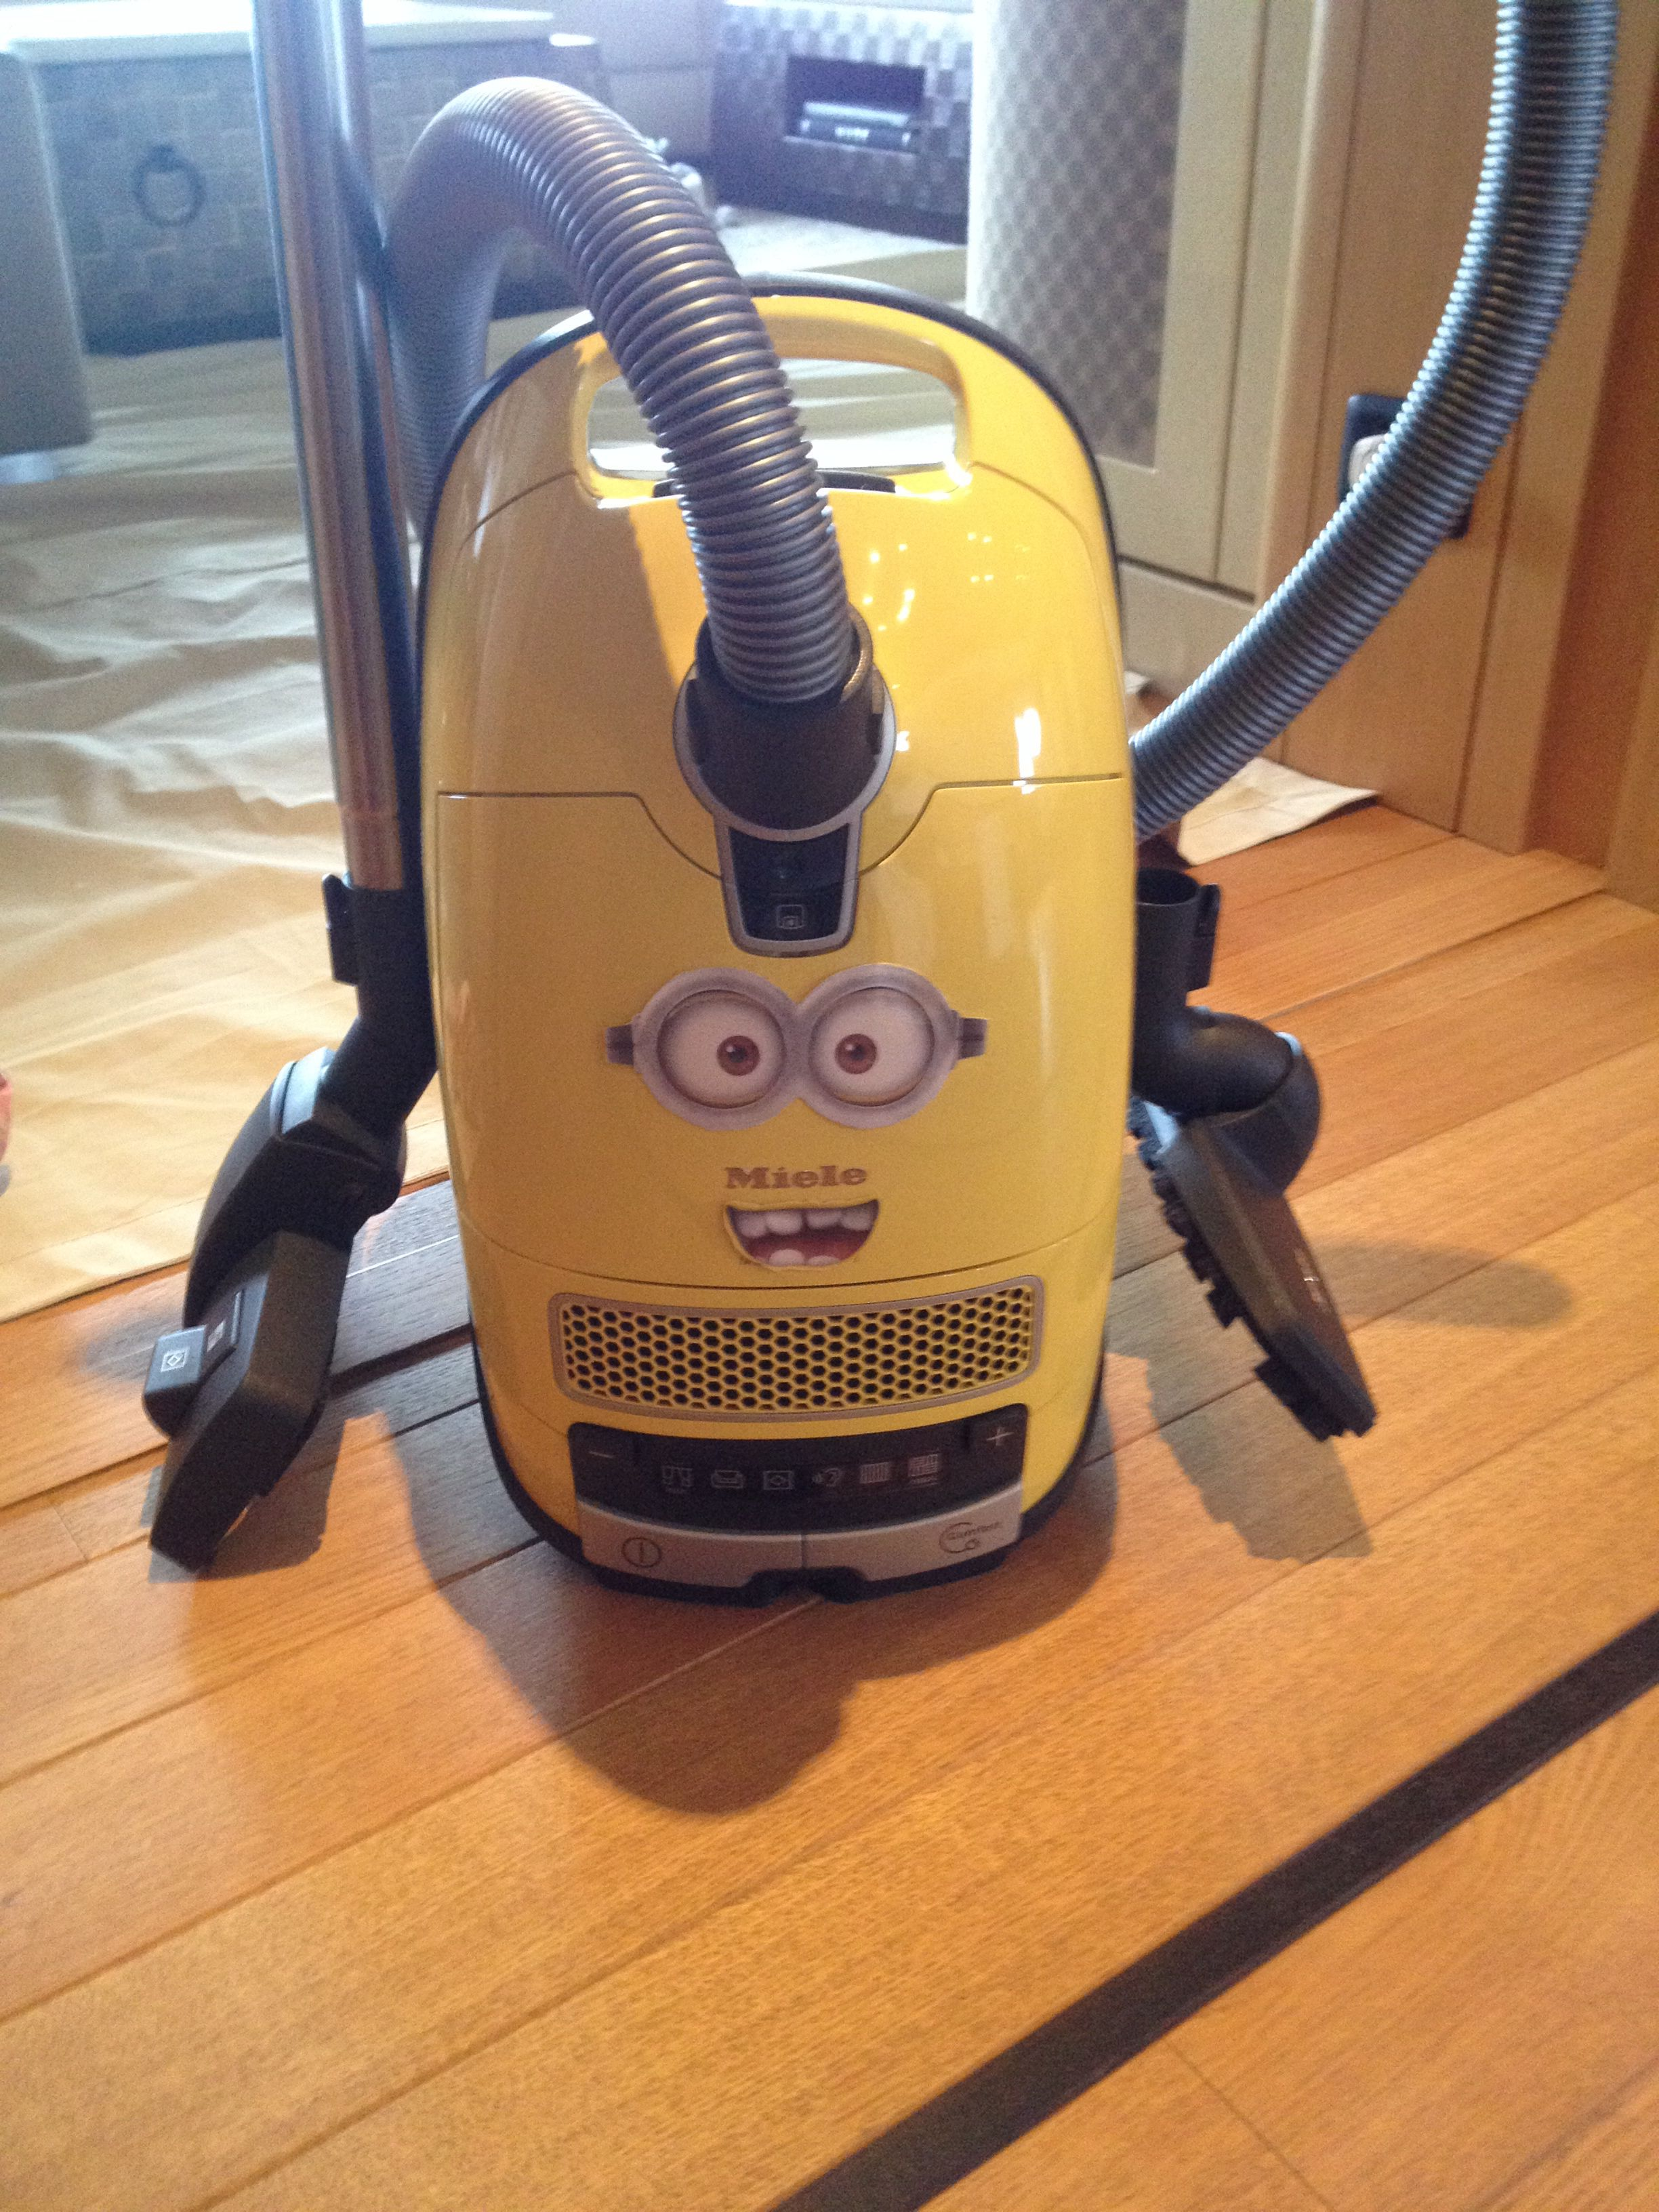 Miele Kookplaat Minion Miele Vacuum Creating Some Entertainment On A Crossing